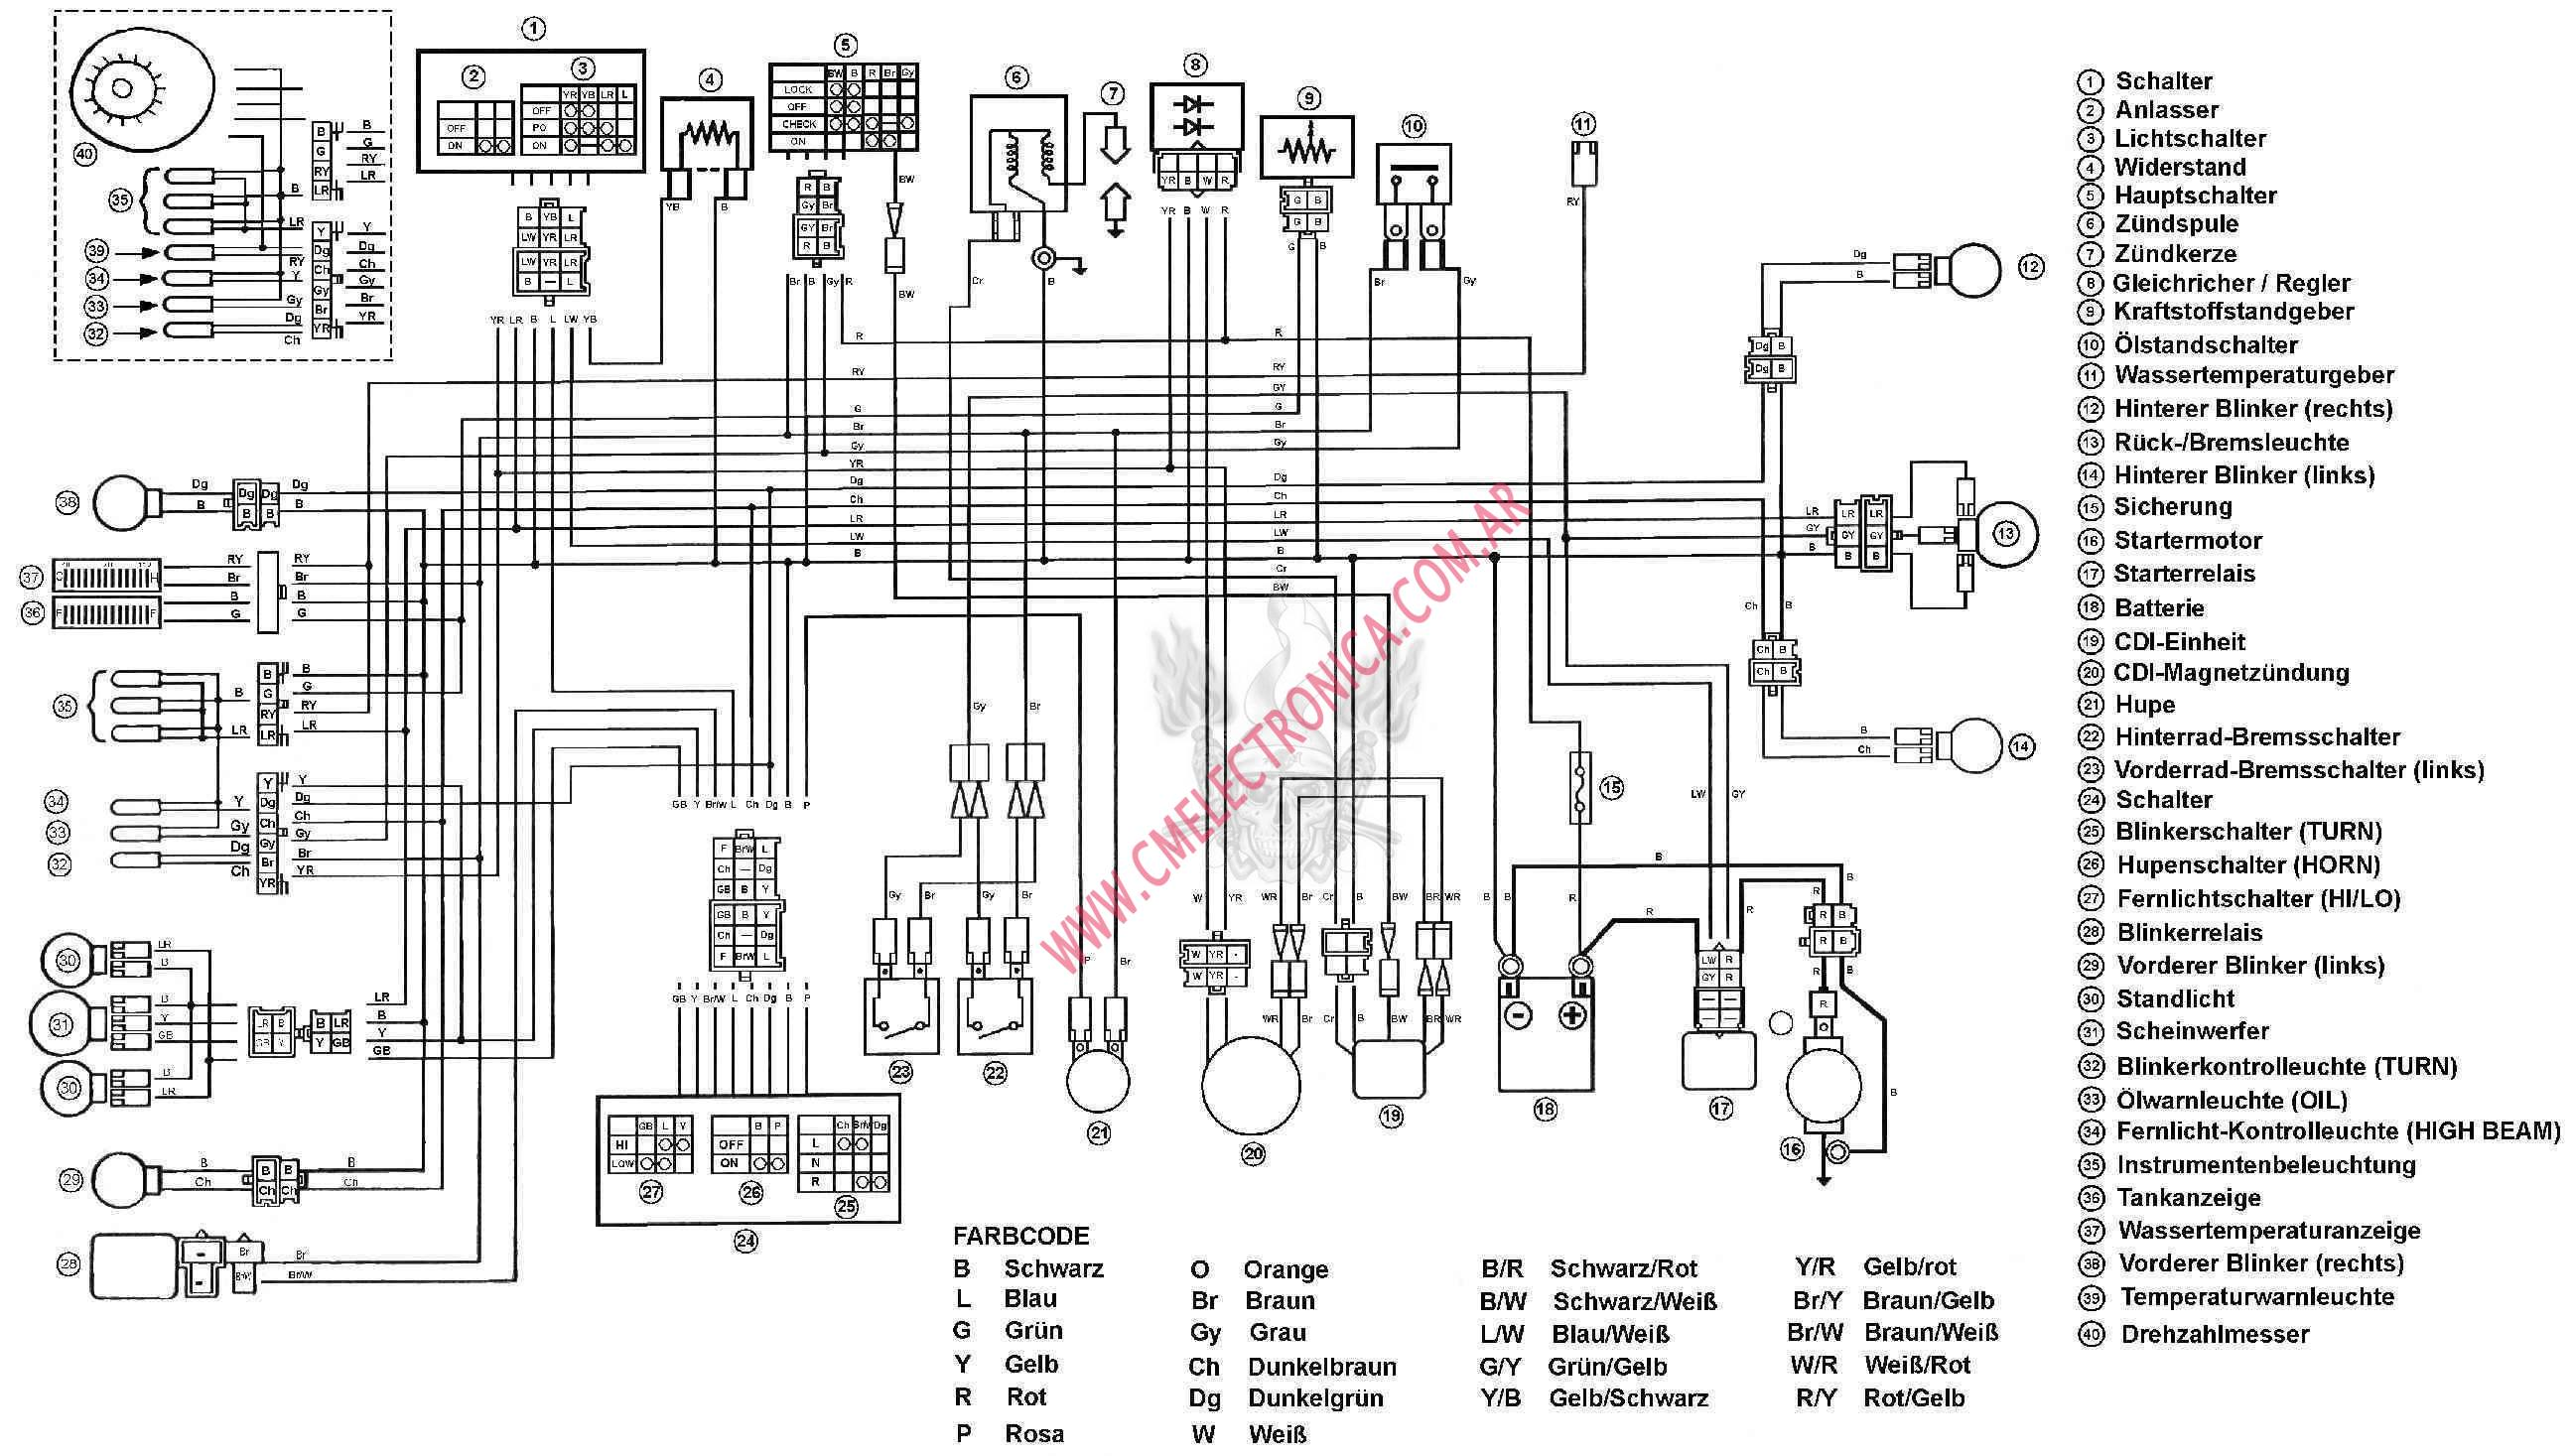 peugeot 607 wiring diagram pdf peugeot vivacity 50 wiring diagram | wiring diagram database peugeot trekker wiring diagram